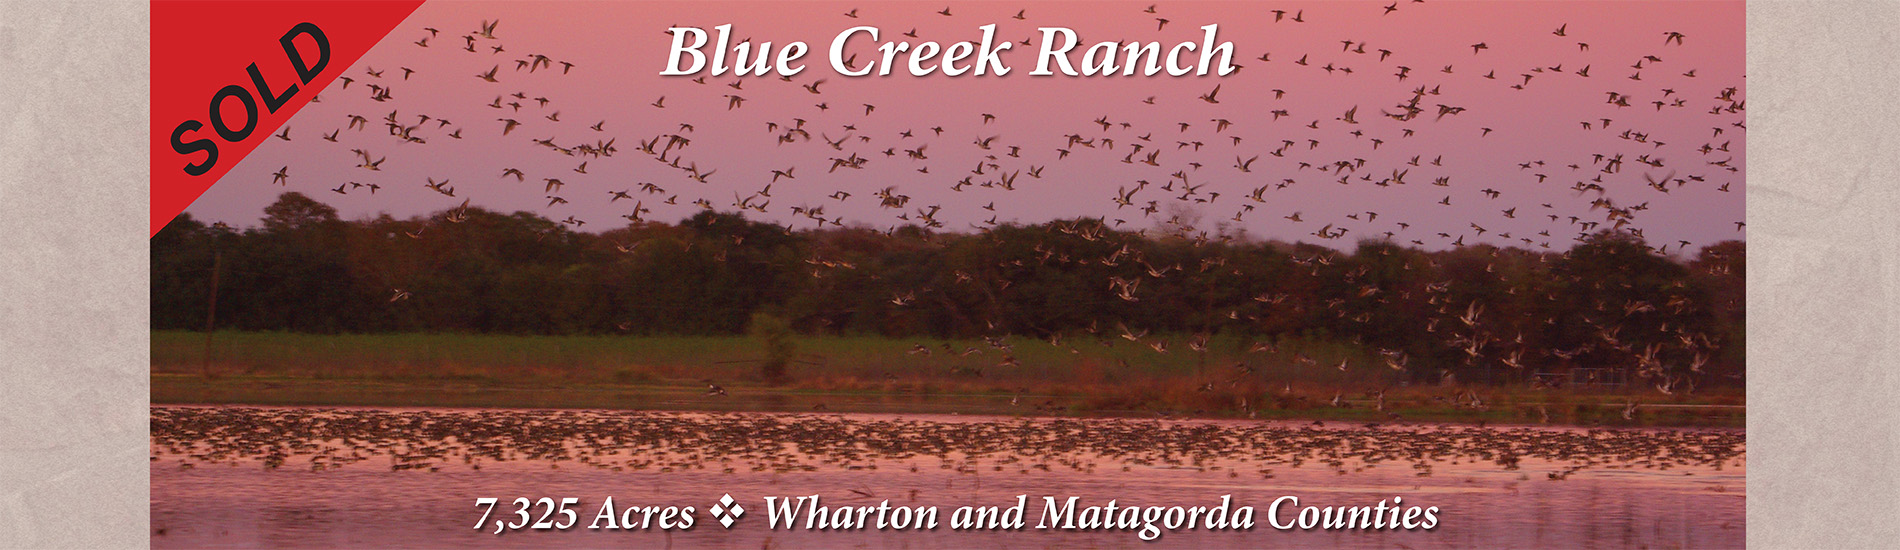 Blue Creek Ranch